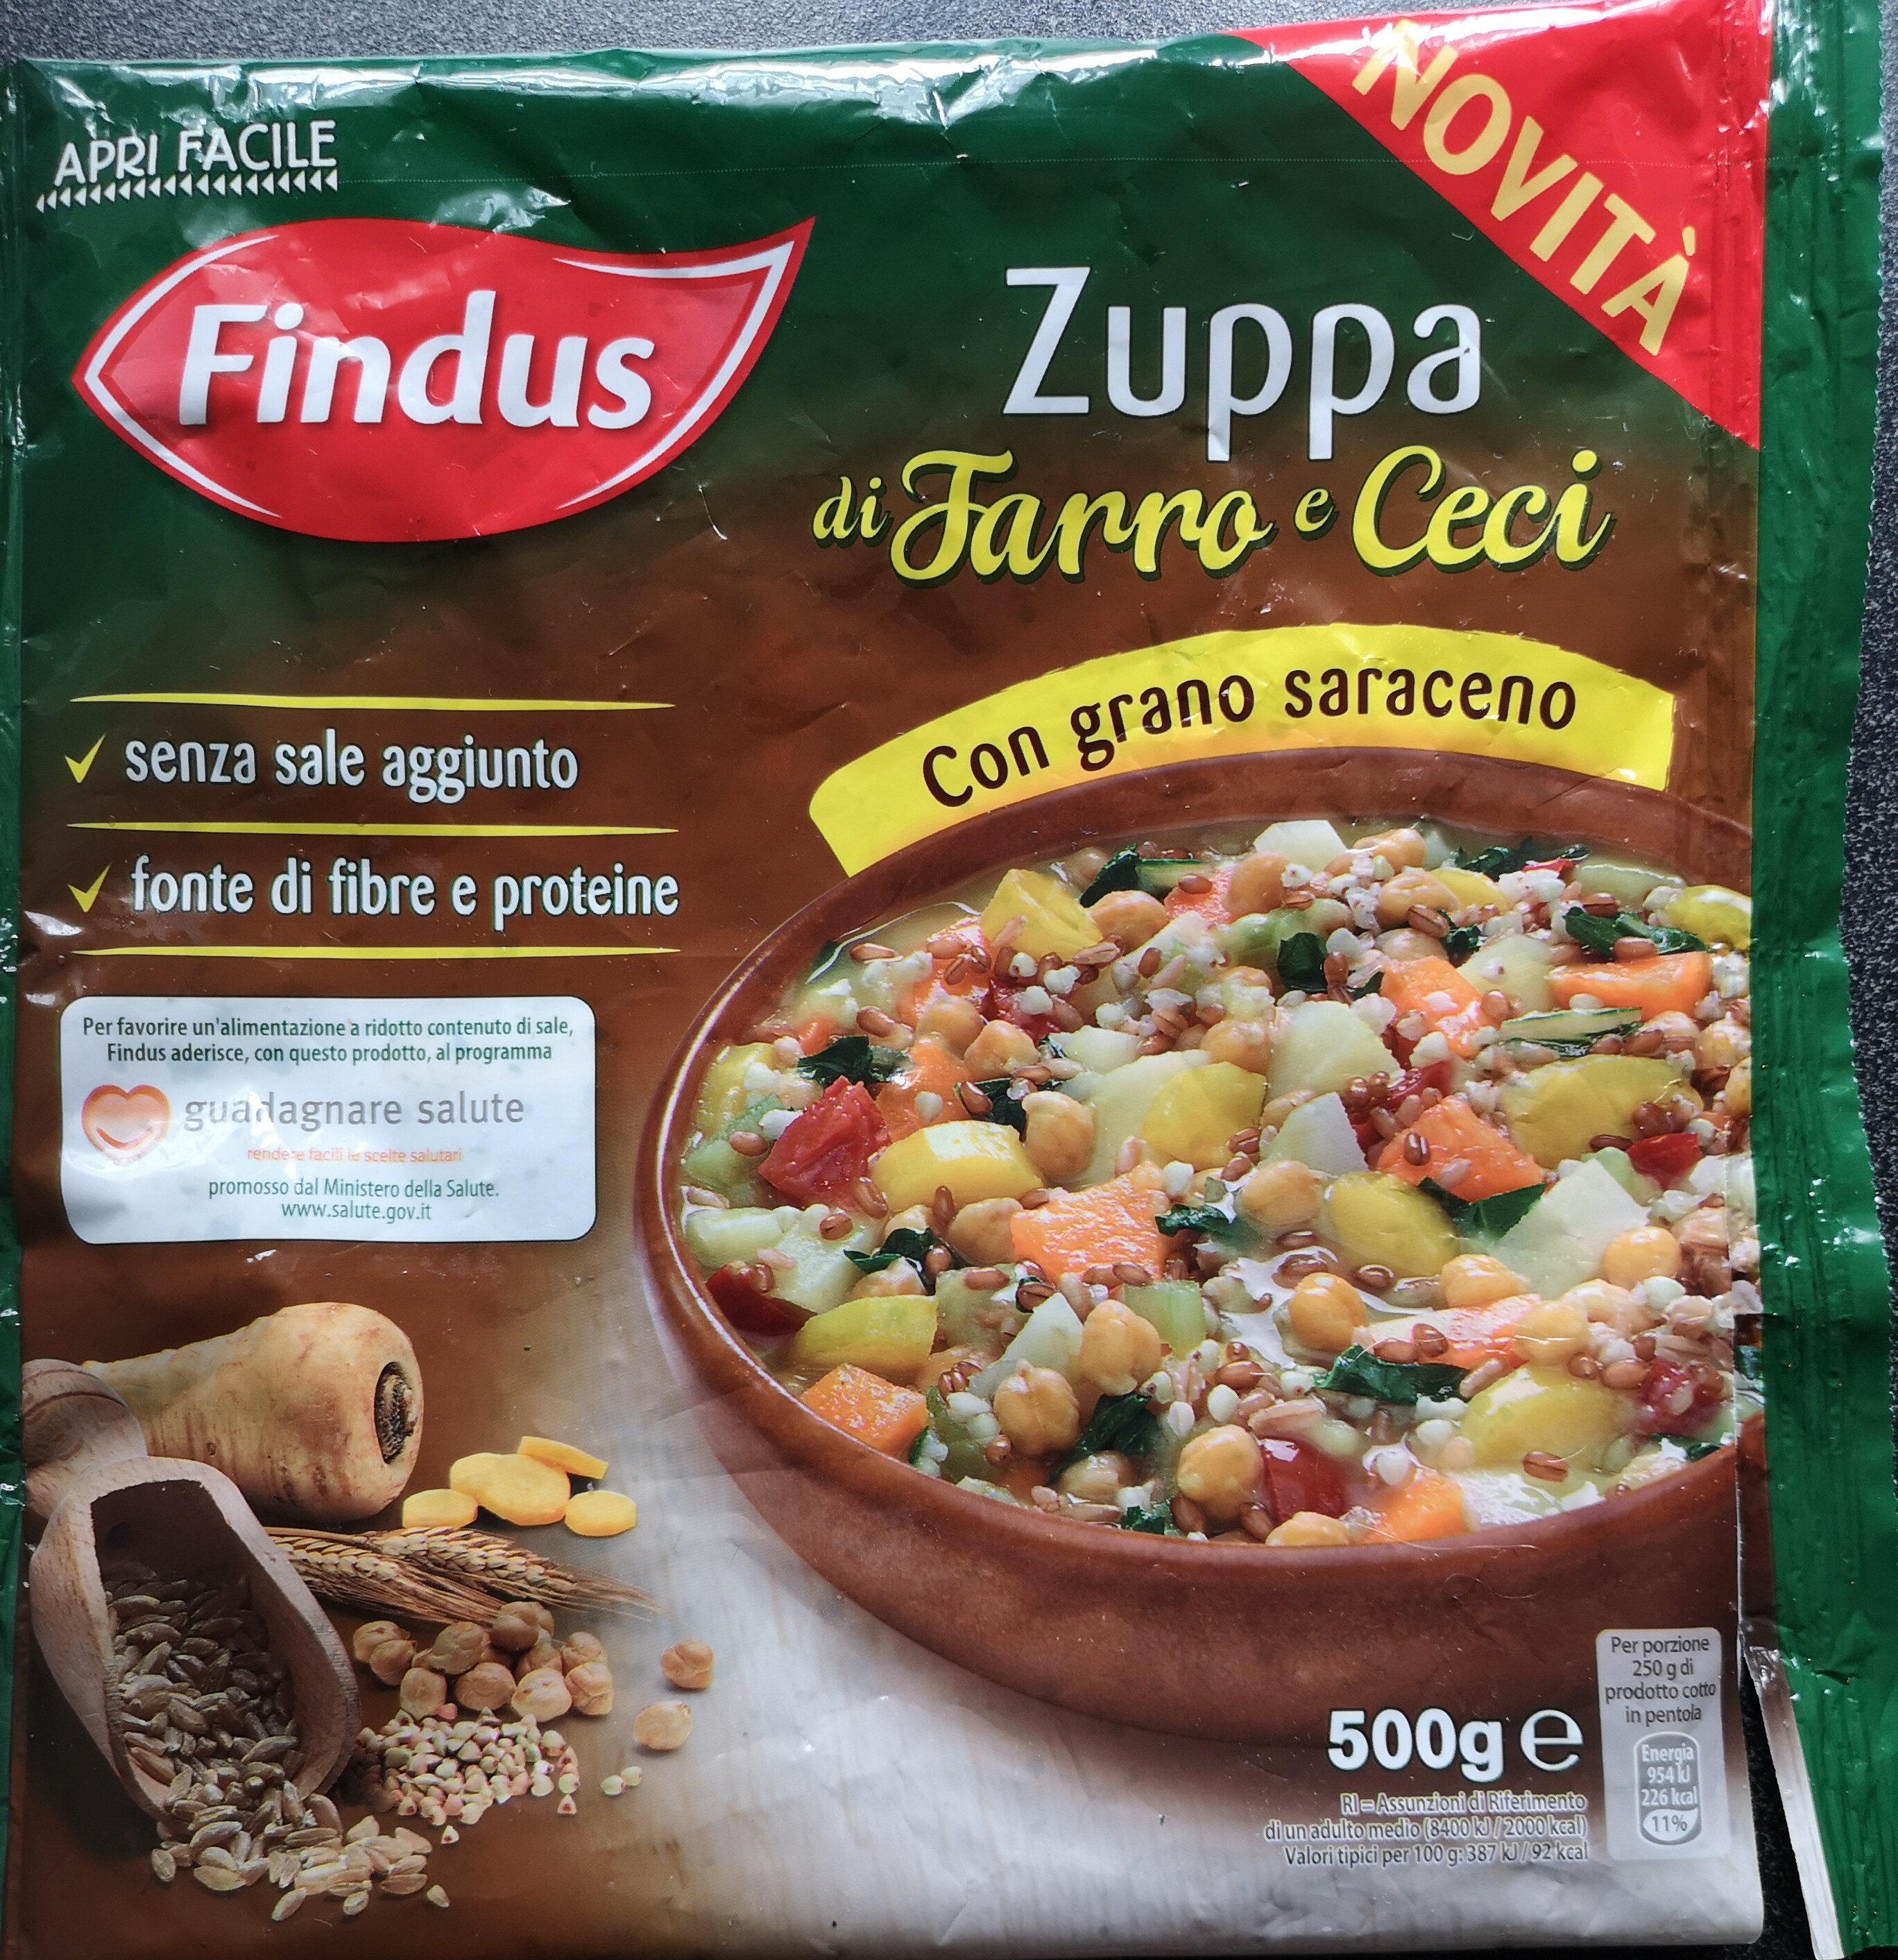 zuppa di farro e ceci - Product - it